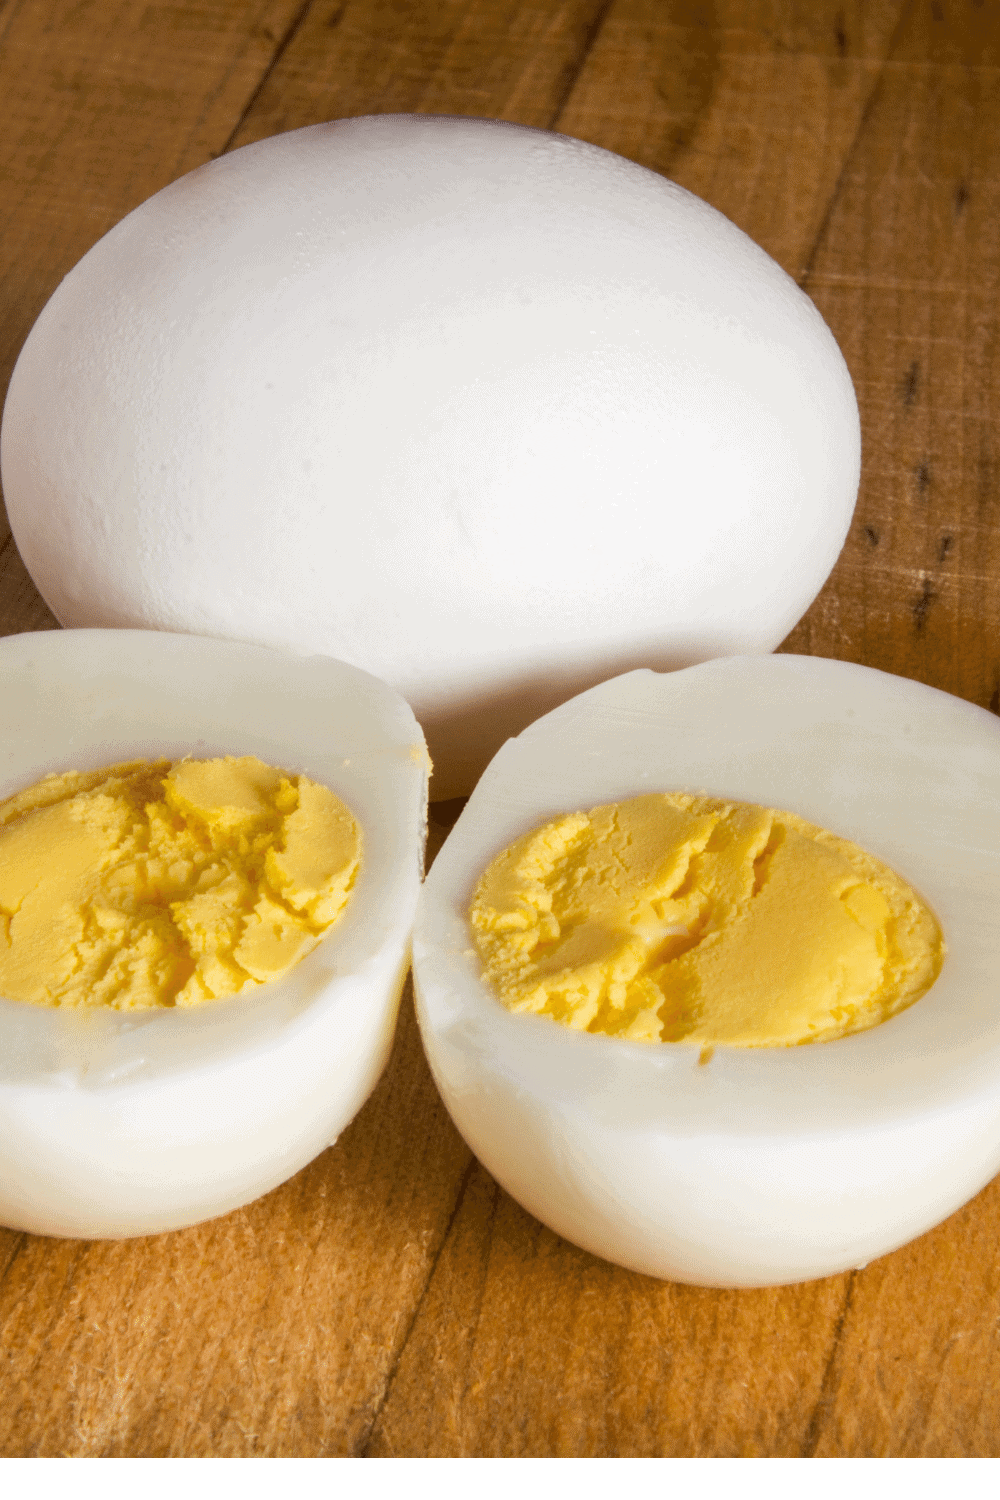 Instant Pot hard-boiled eggs after they are cooked, with one egg whole and one egg sliced in half